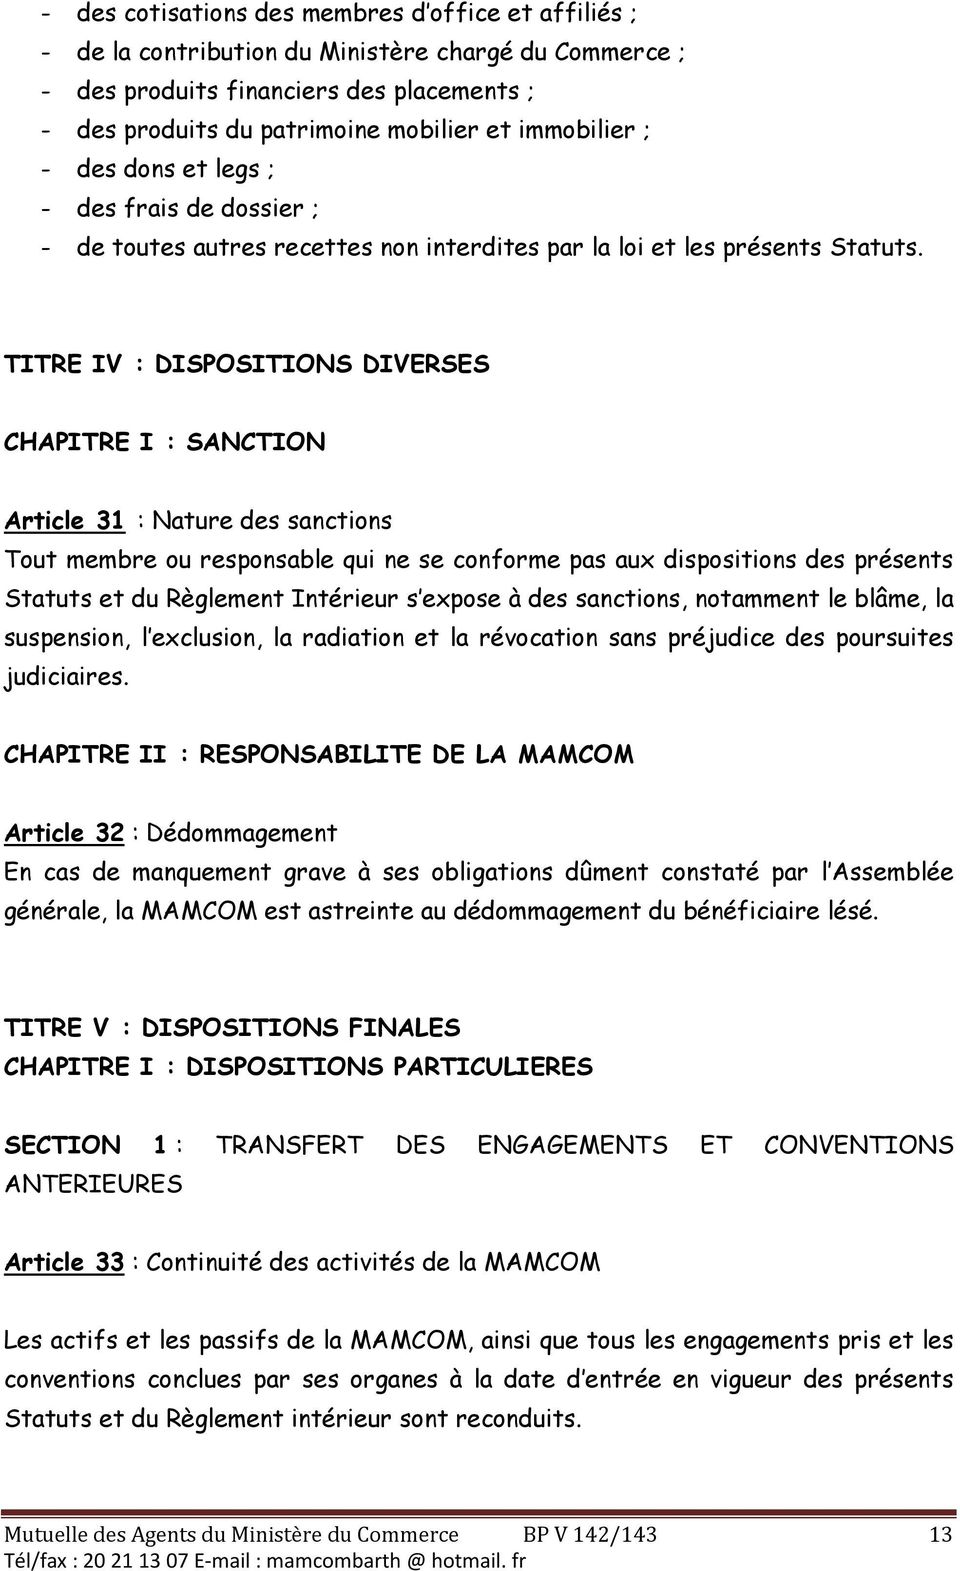 TITRE IV : DISPOSITIONS DIVERSES CHAPITRE I : SANCTION Article 31 : Nature des sanctions Tout membre ou responsable qui ne se conforme pas aux dispositions des présents Statuts et du Règlement